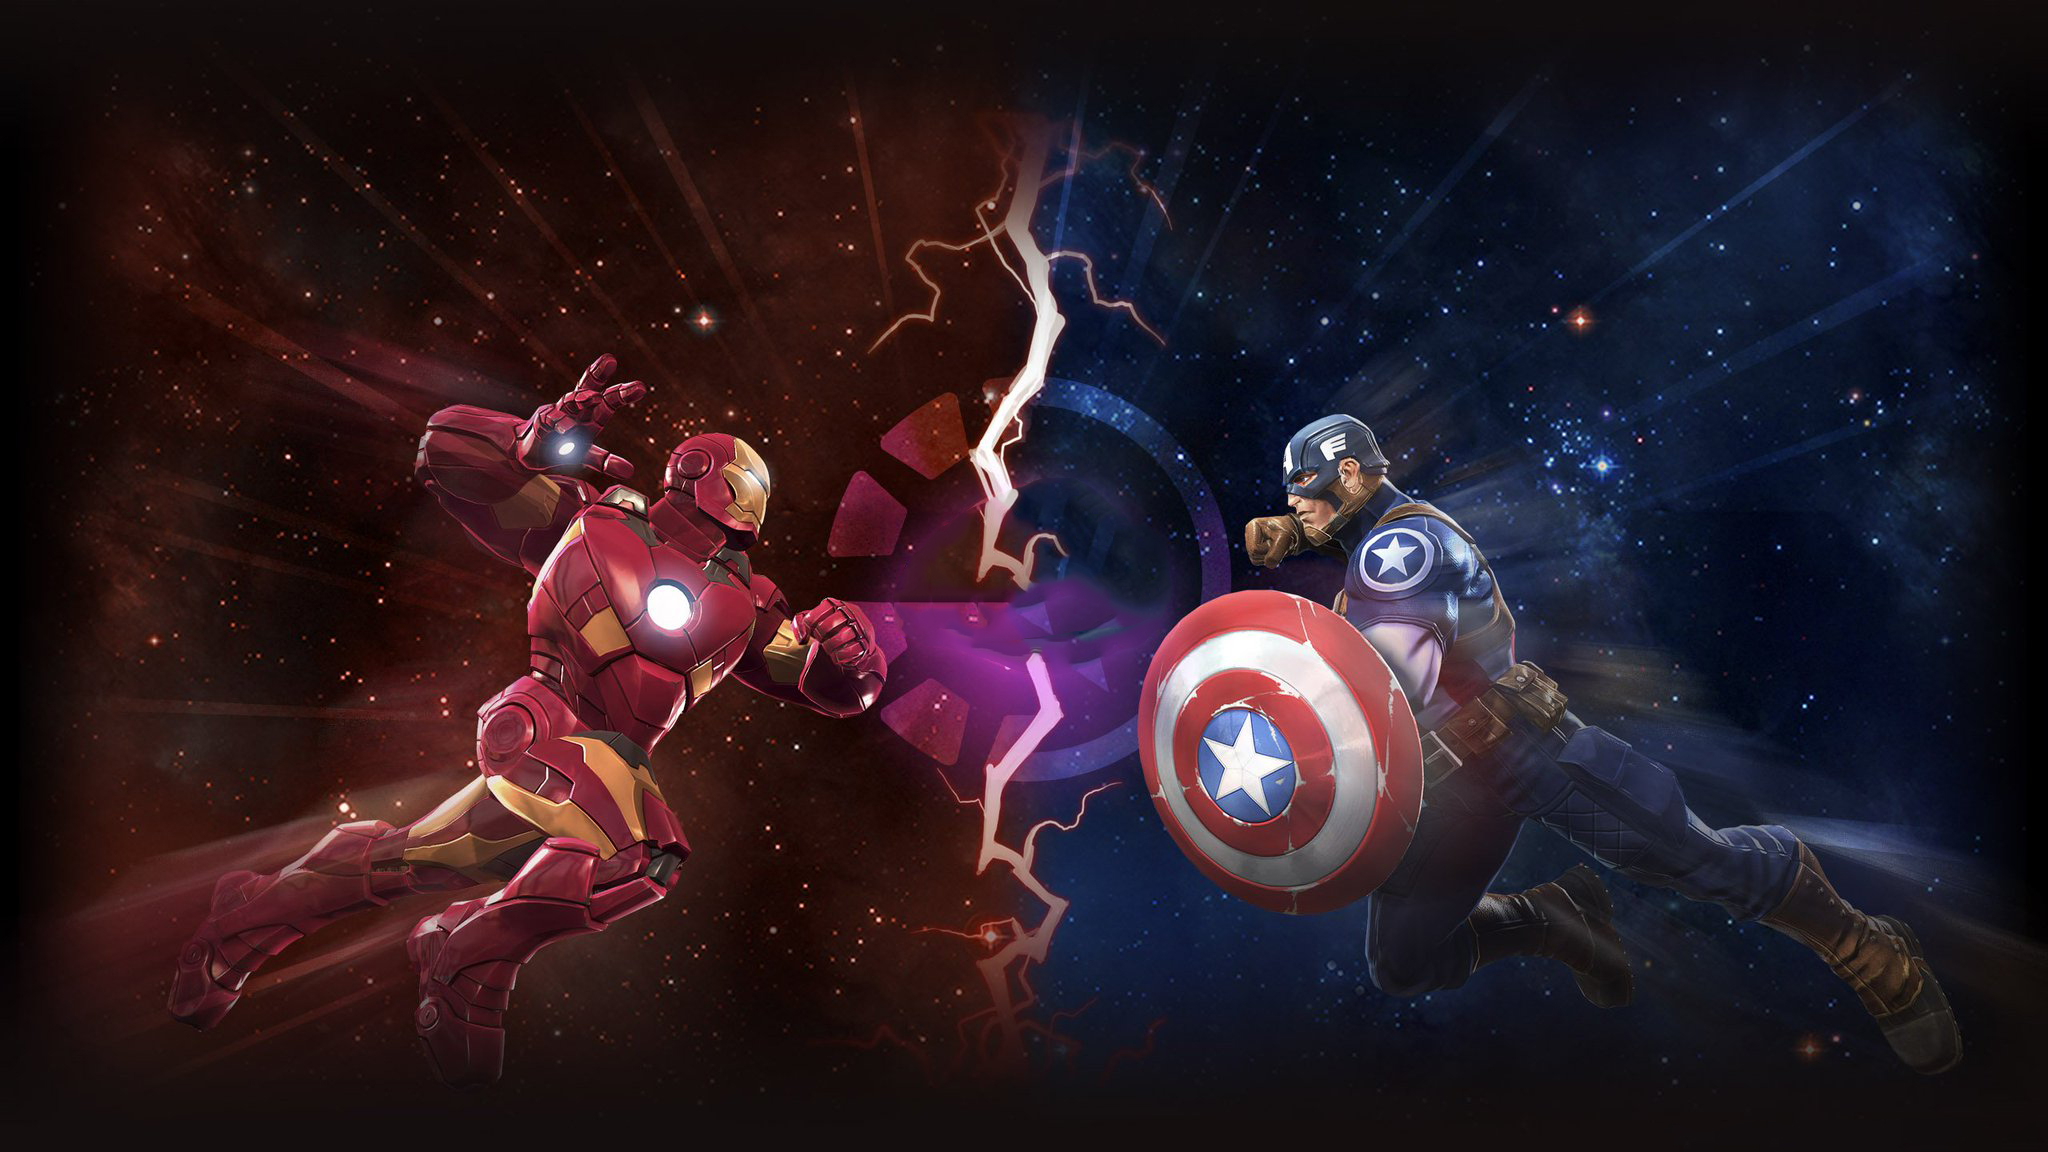 Iron Man vs Captain America Artwork Wallpapers HD Wallpapers 2048x1152